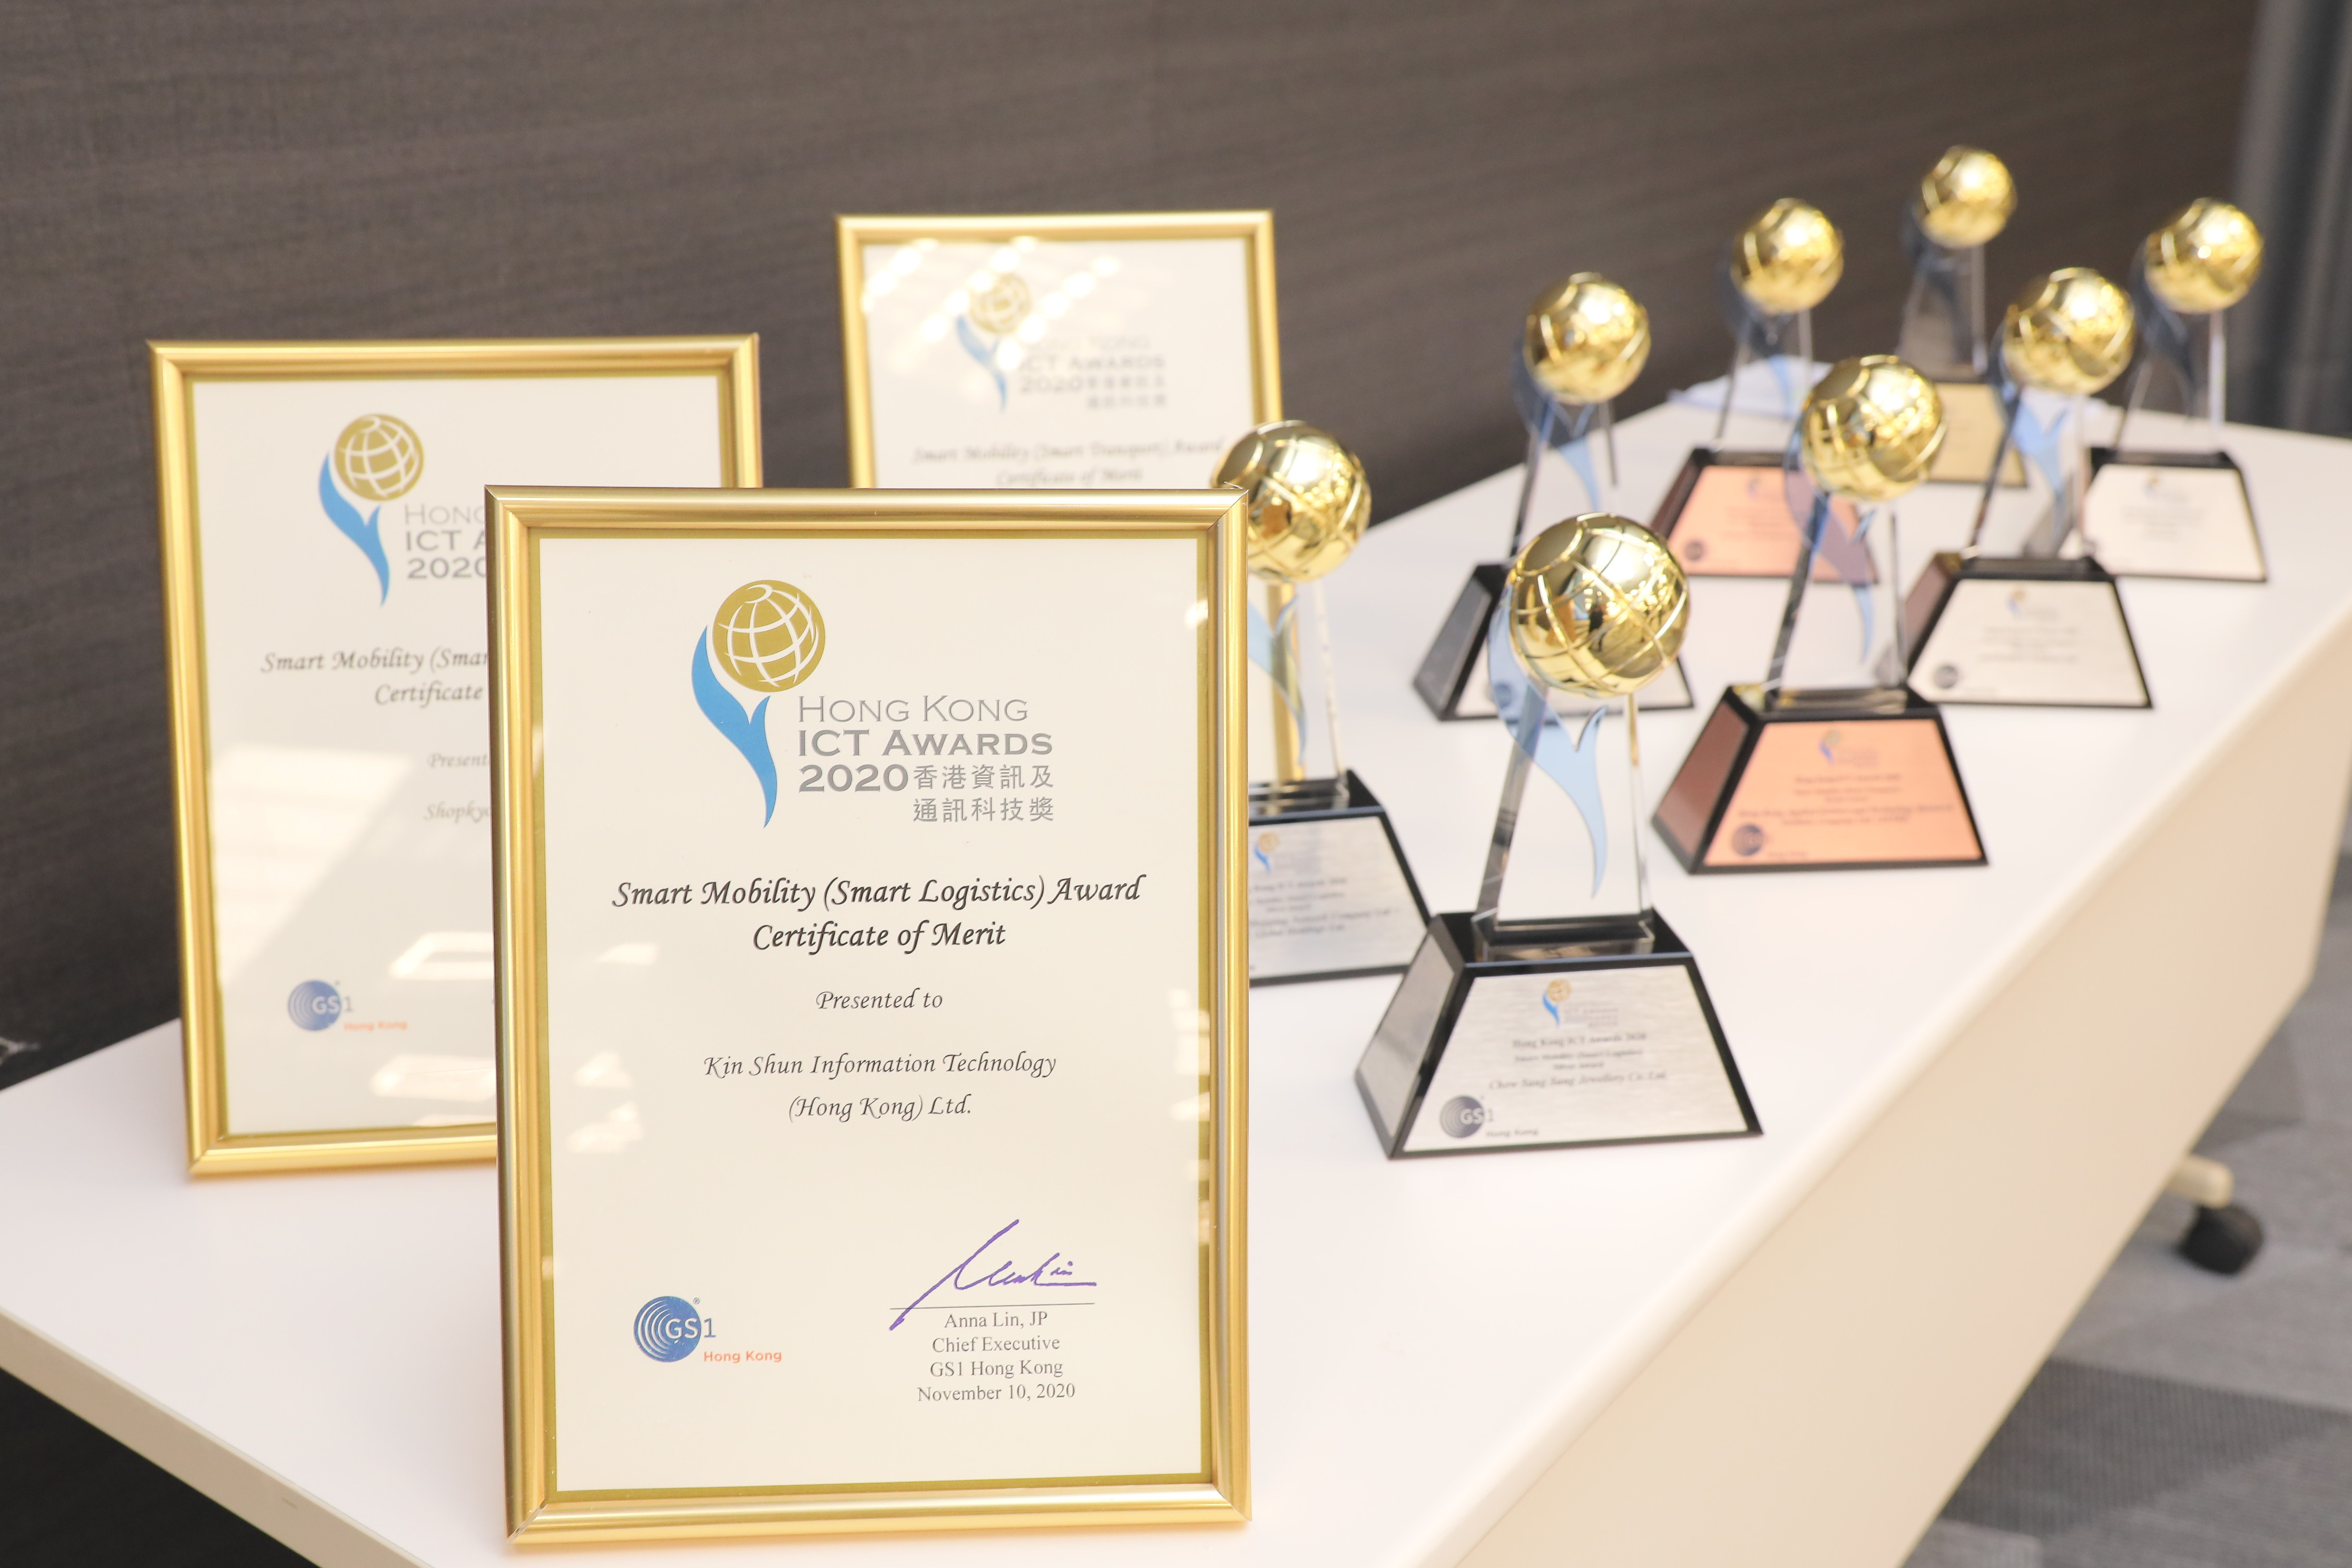 ICT Awards 2020 - Awards